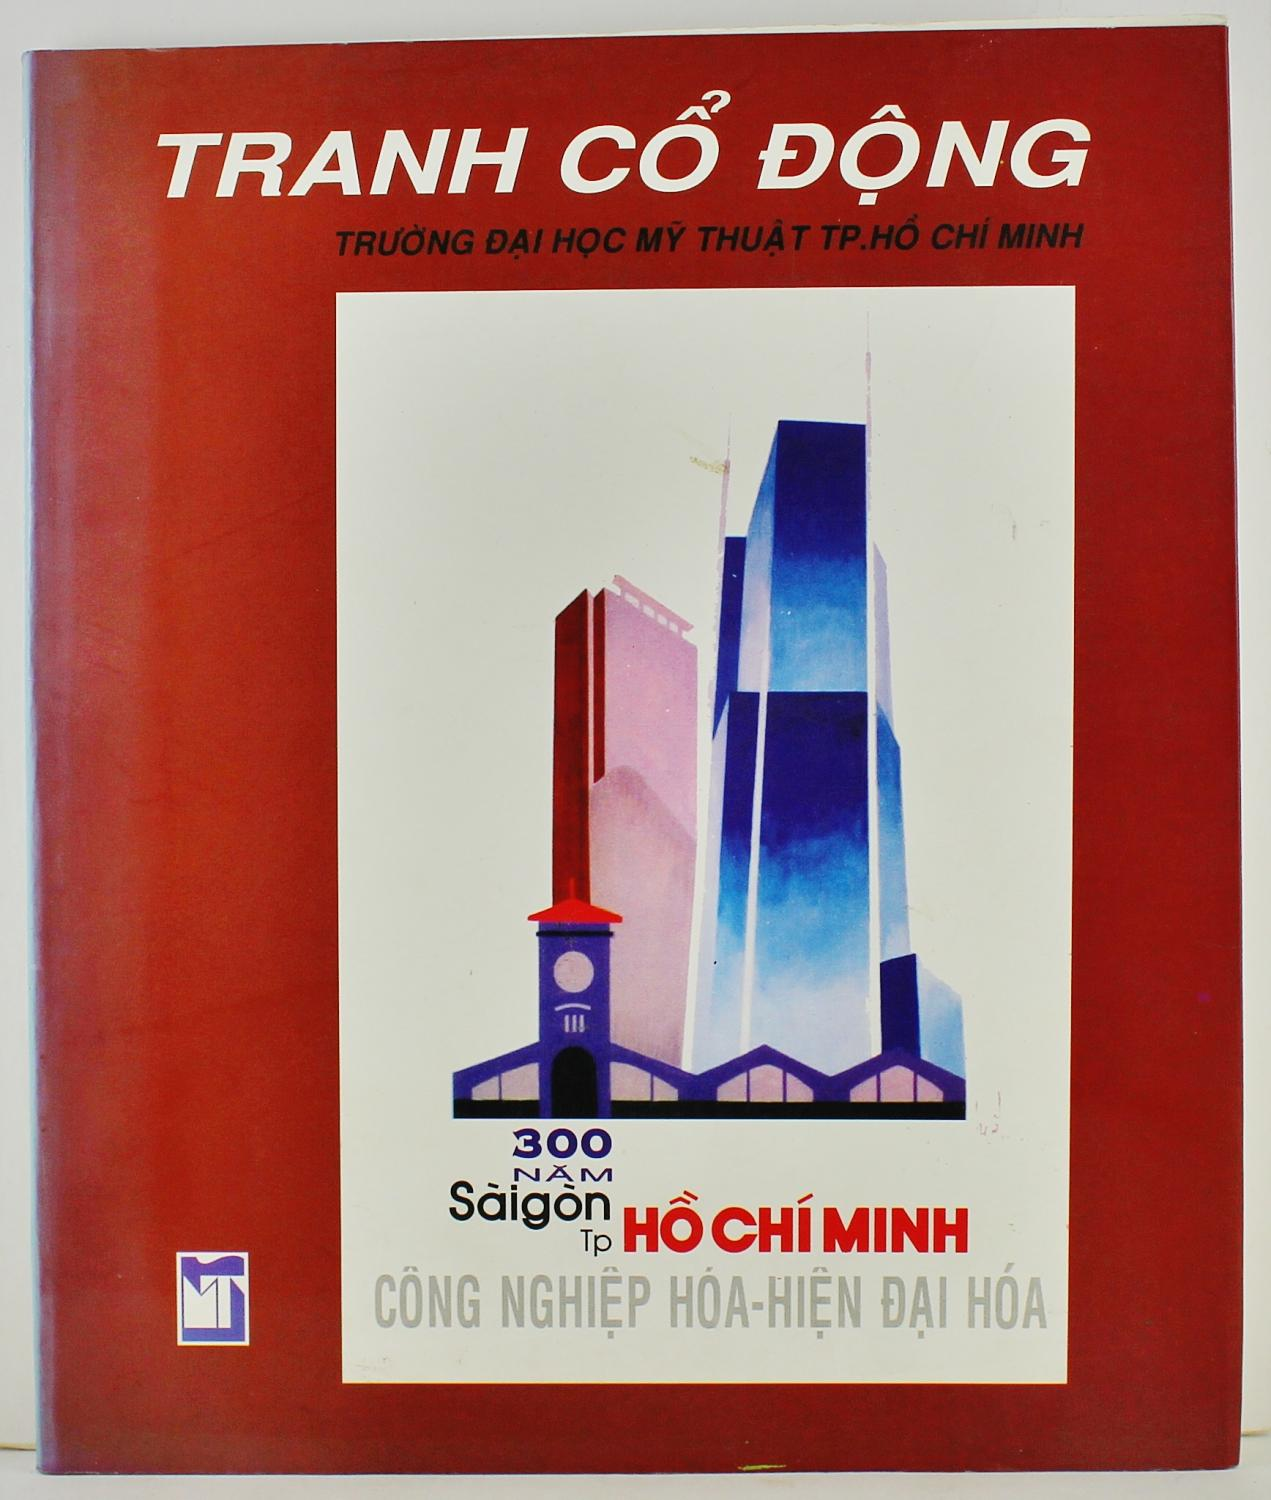 Tranh Co Dong Affice Truong Dai Hoc My Thuat TP Ho Chi Minh Collection of 62 Affices of HCMC University of Fine Arts Ha Van Ngoc Suong